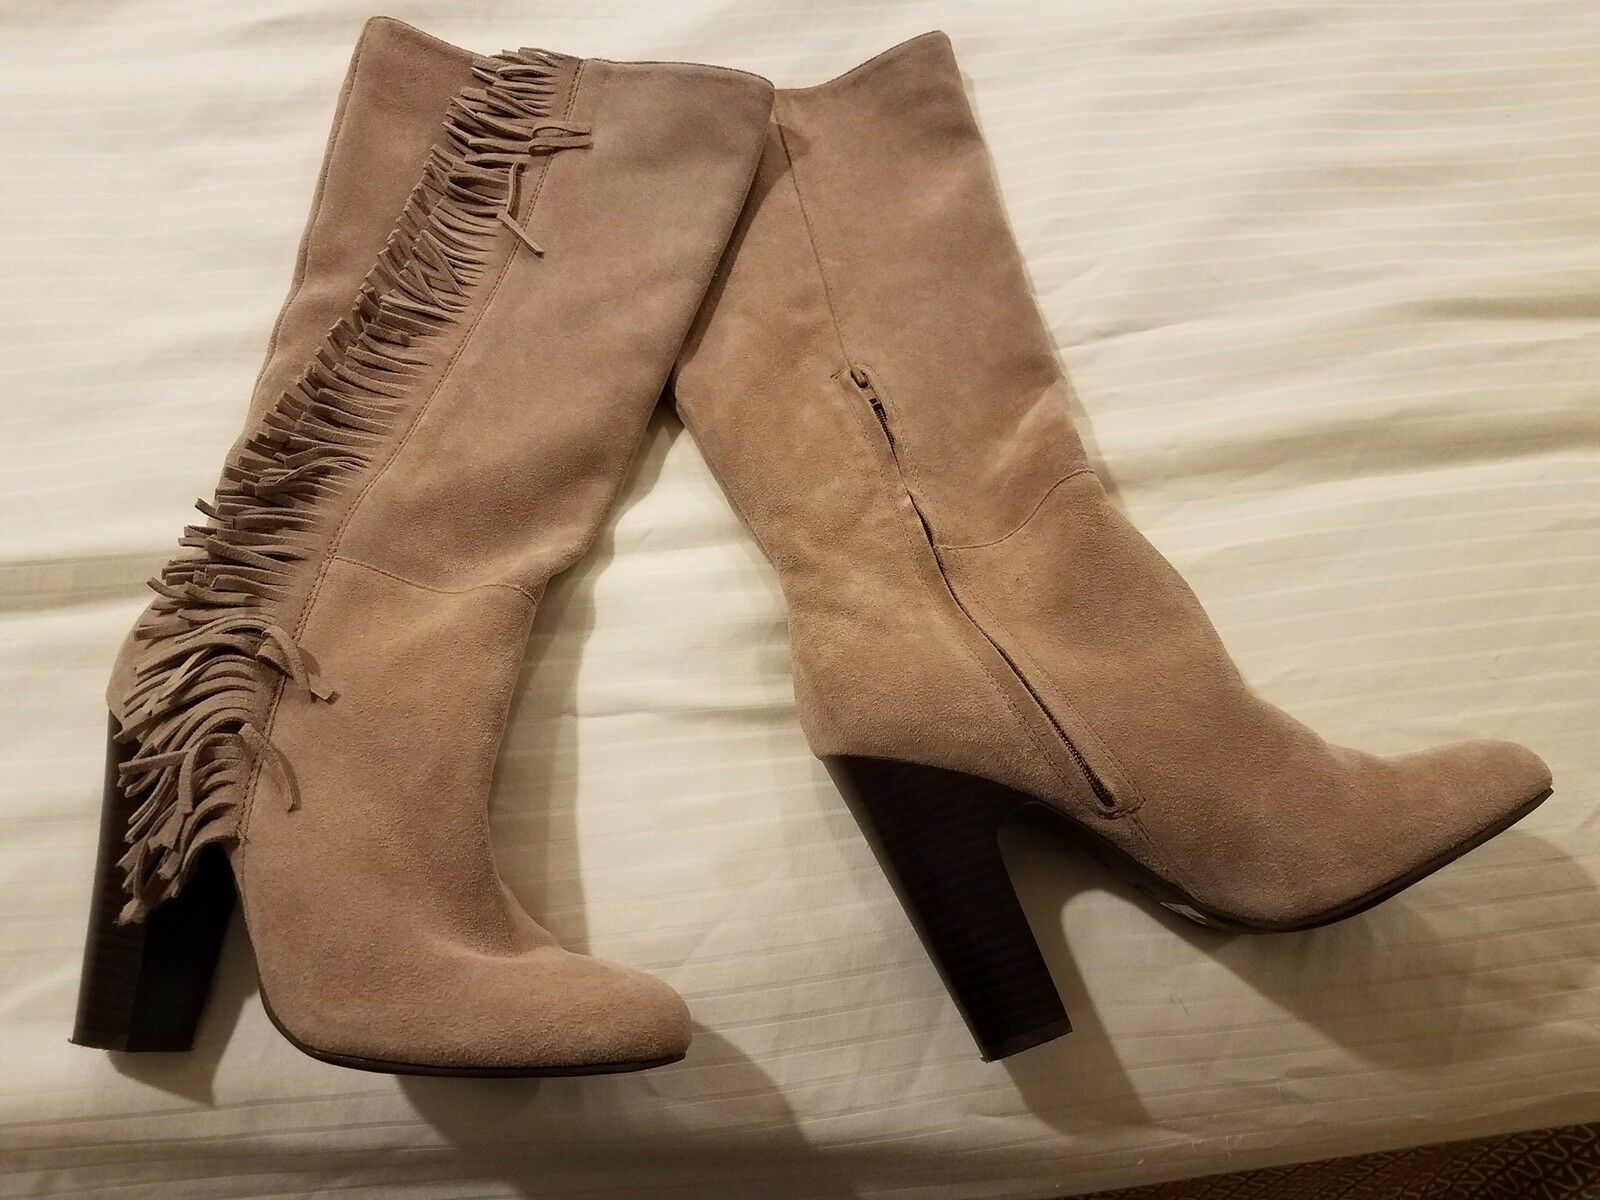 FRYE Women's Fringe Leather Suede Boots Iced Iced Iced Taupe Size 9M EUC a0666e